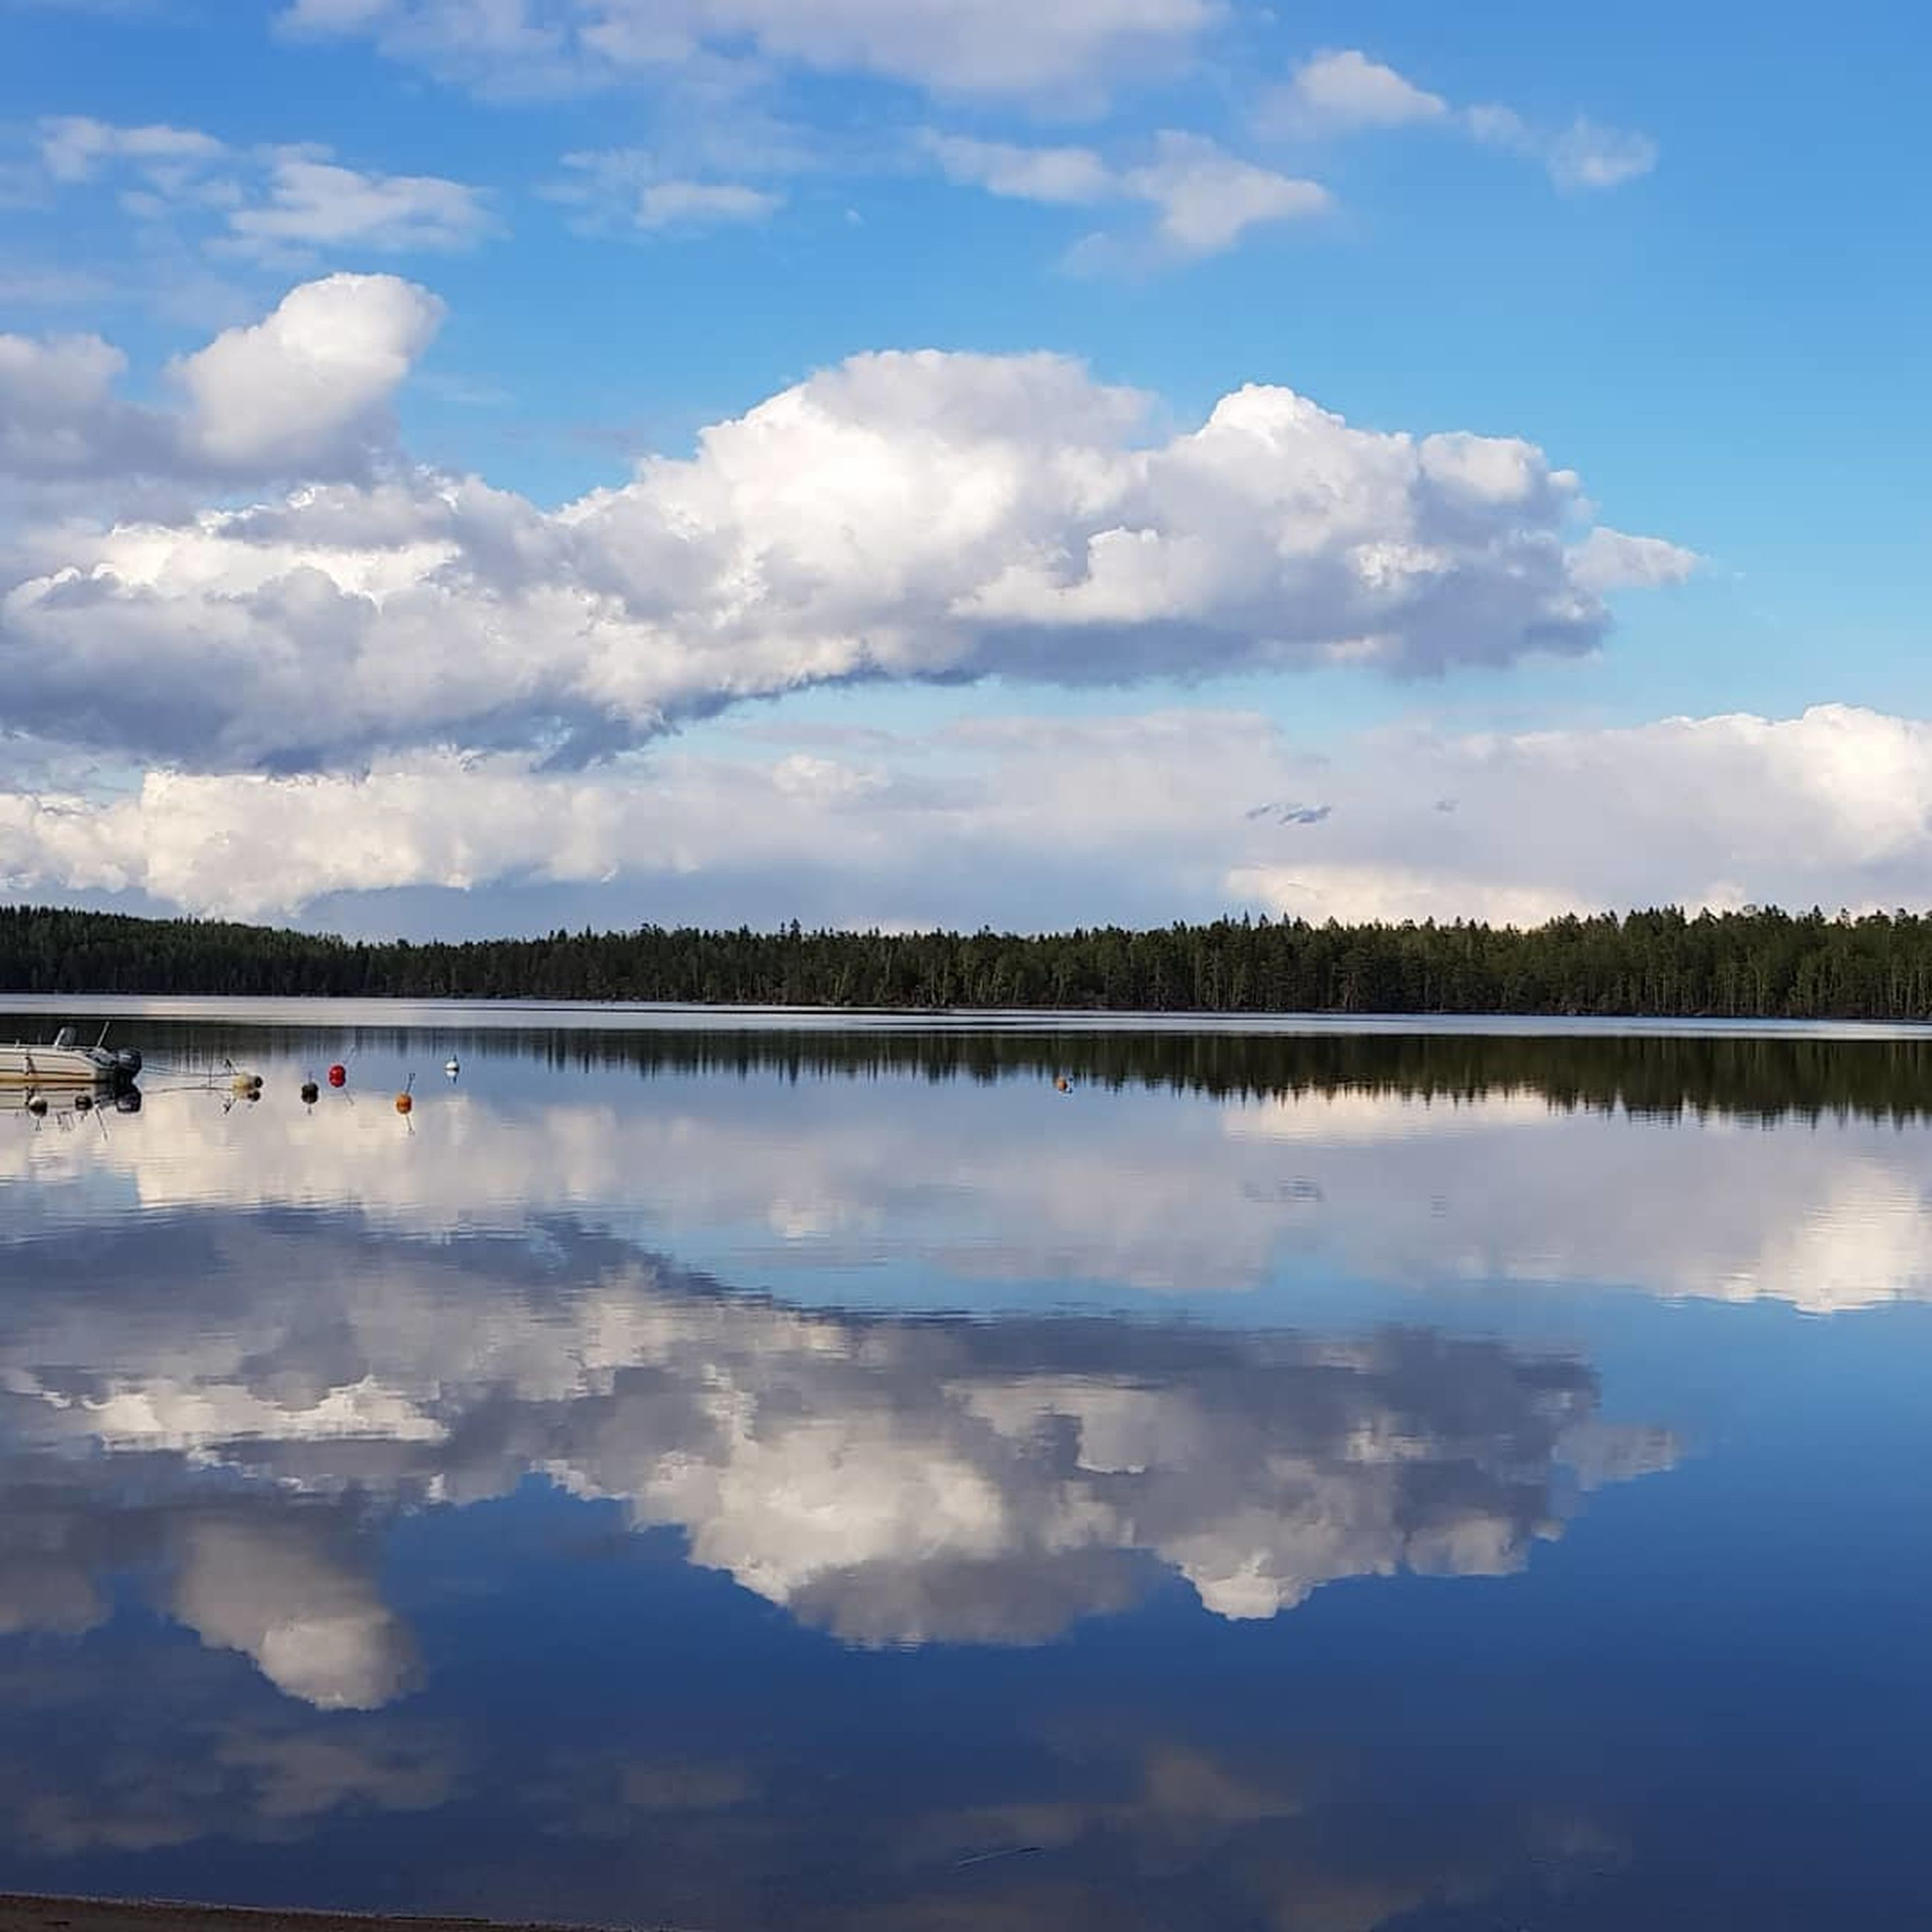 cloud - sky, sky, reflection, tranquility, scenics - nature, water, beauty in nature, lake, tranquil scene, nature, waterfront, symmetry, no people, idyllic, day, non-urban scene, outdoors, blue, plant, reflection lake